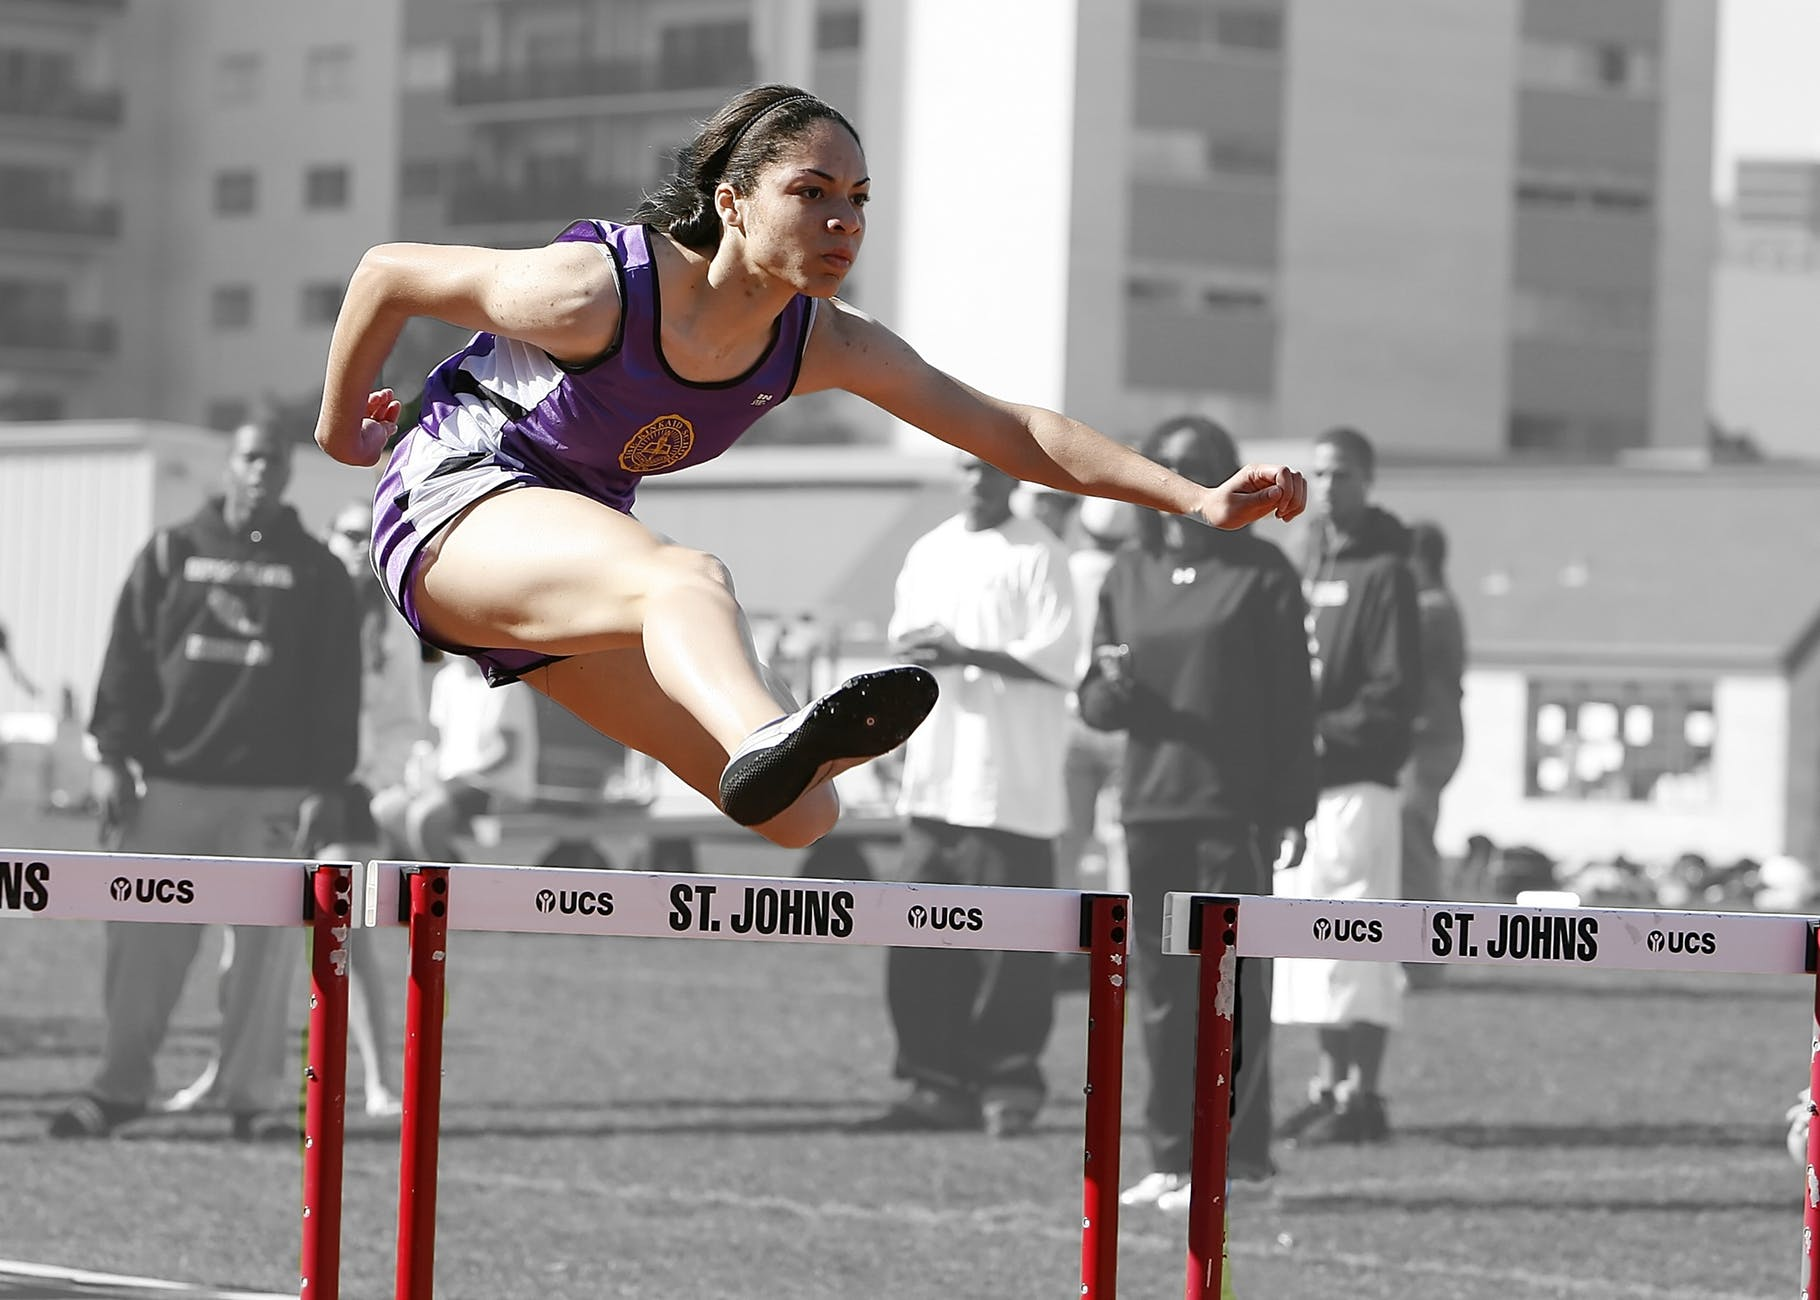 hurdles-track-race-competition-159745.jpeg